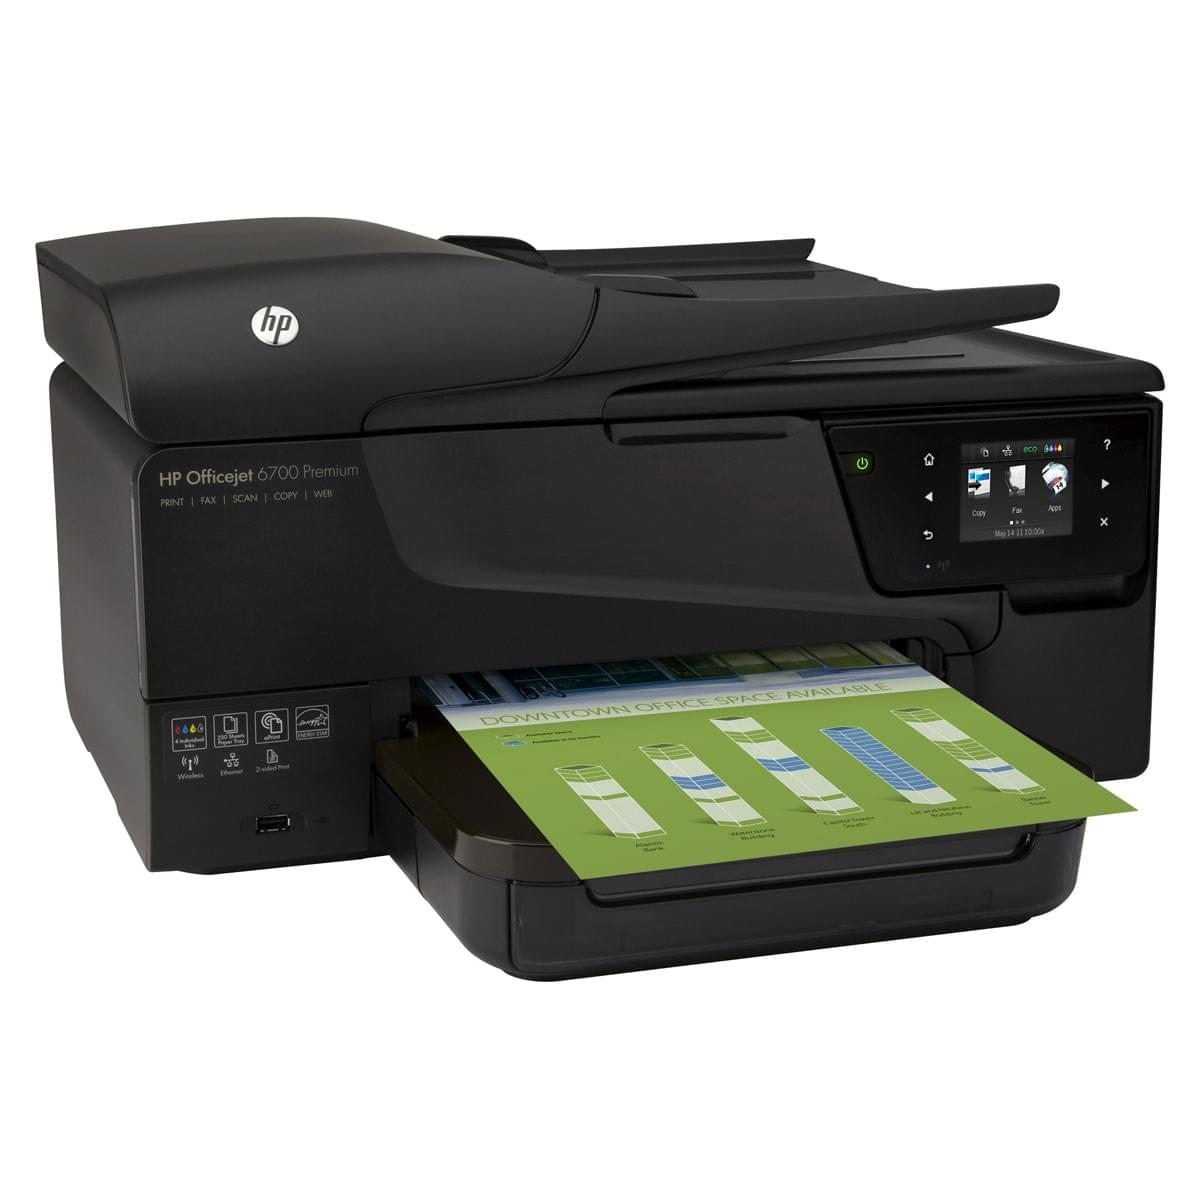 HP OfficeJet 6700 Premium e-All-in-One H711n (CN583A#BH8) - Achat / Vente Imprimante Multifonction sur Cybertek.fr - 0